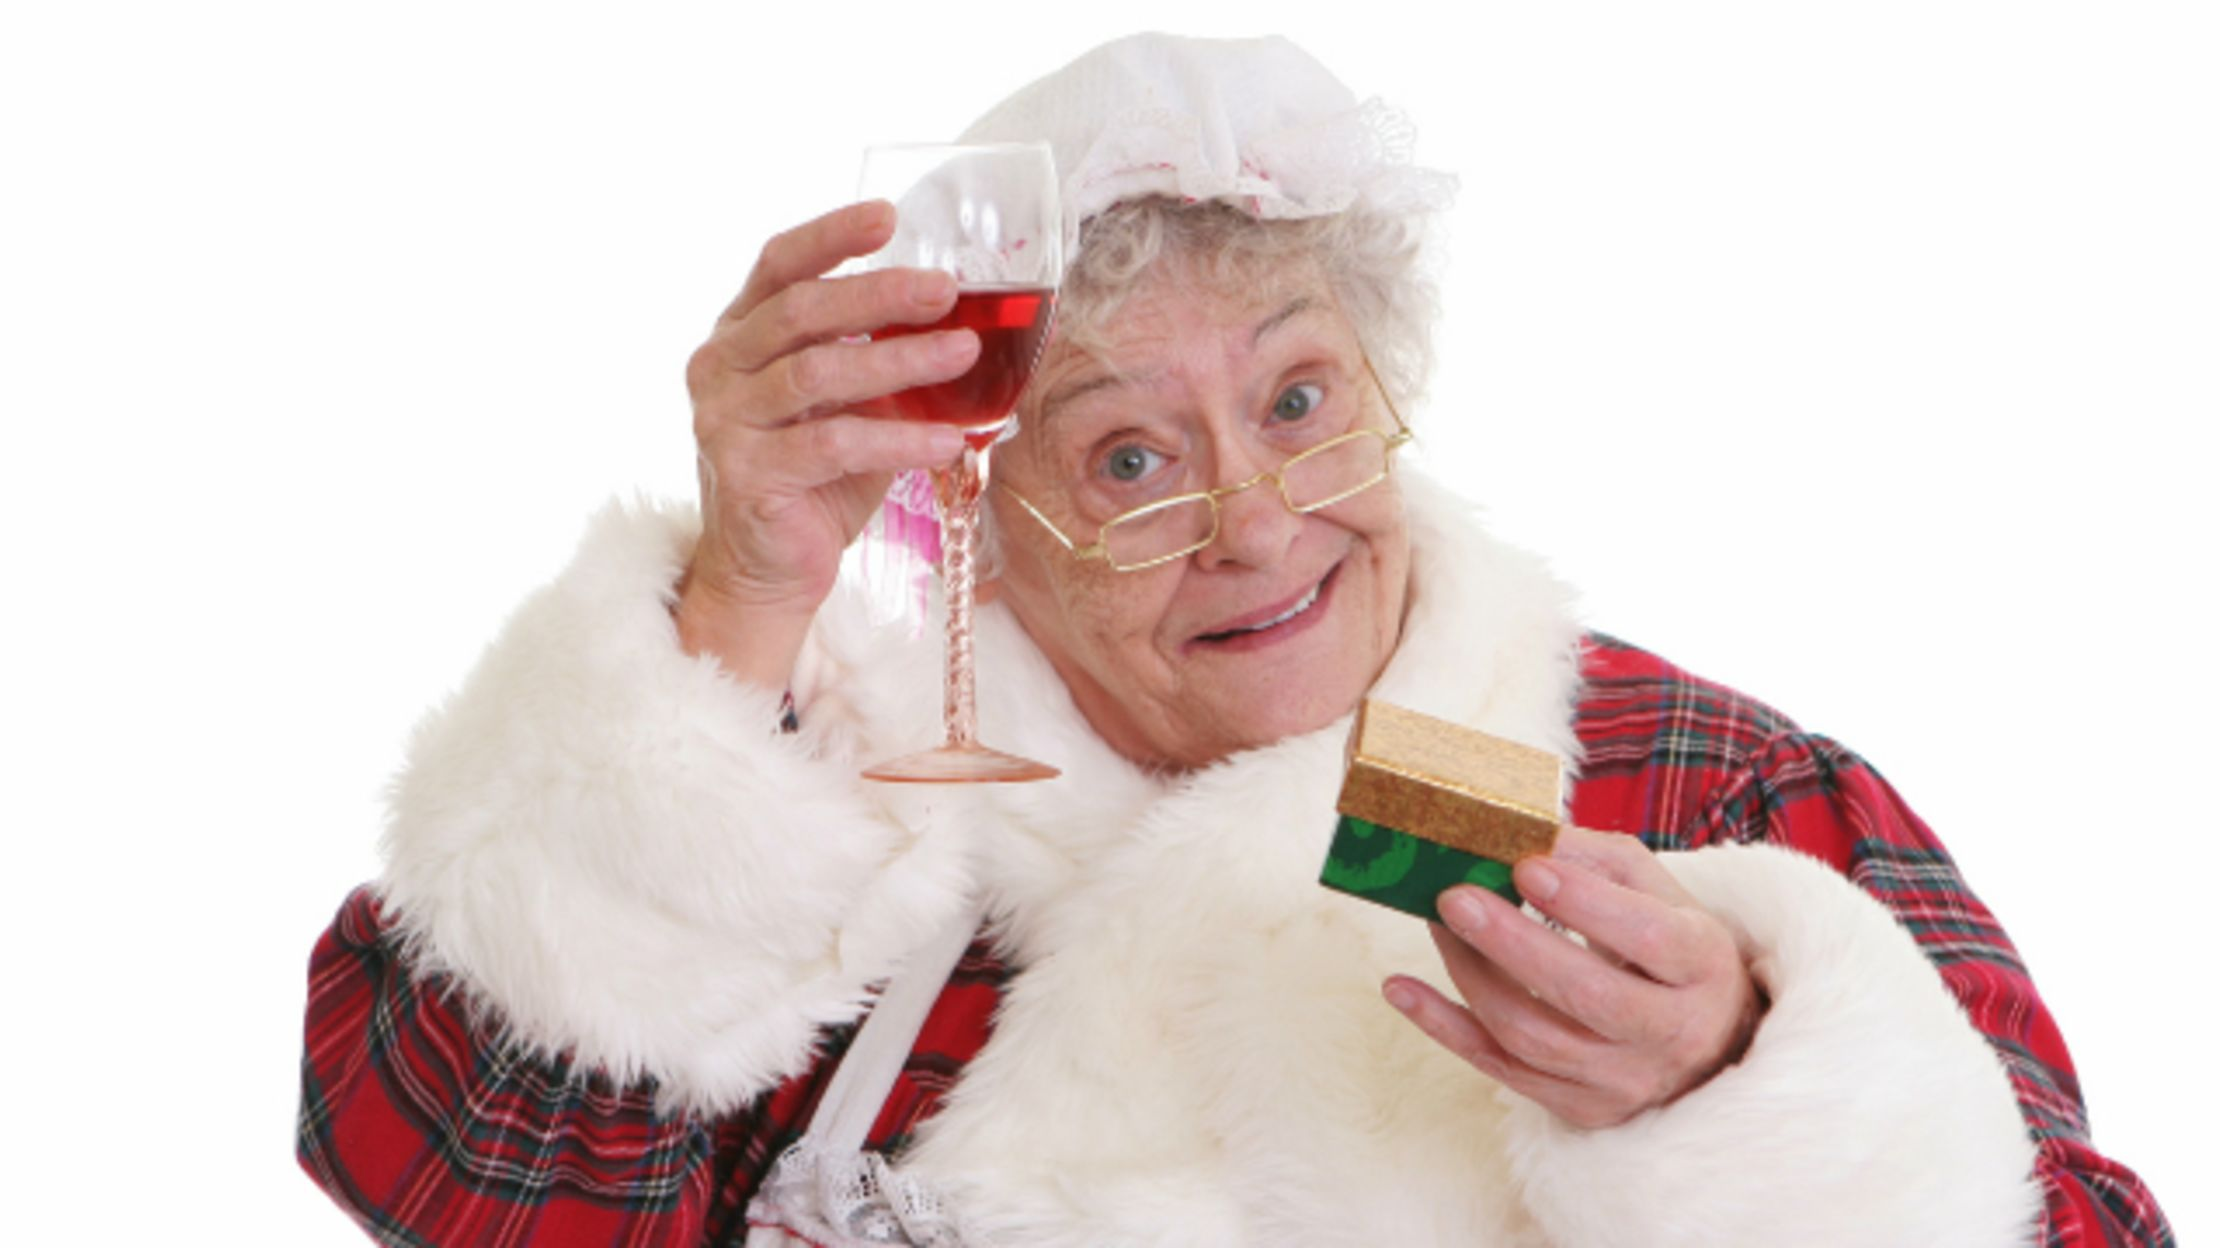 Mrs claus the unfaithful wife